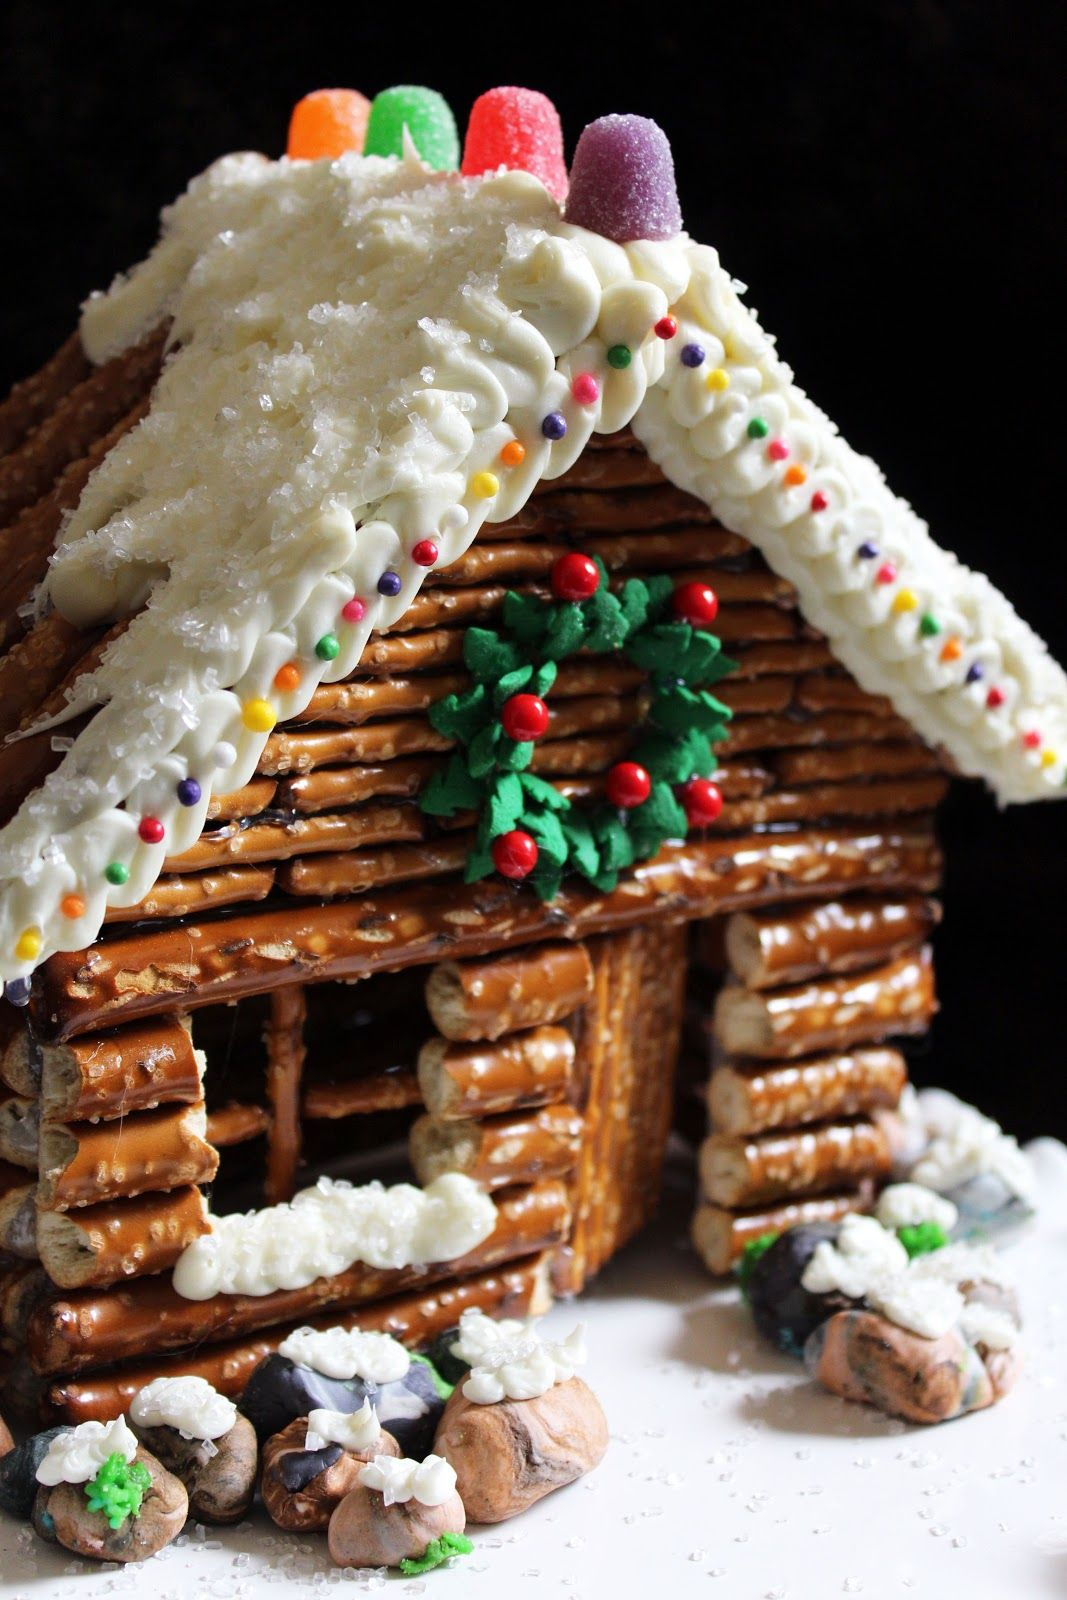 Make One of These Amazing Gingerbread Houses on Your Next